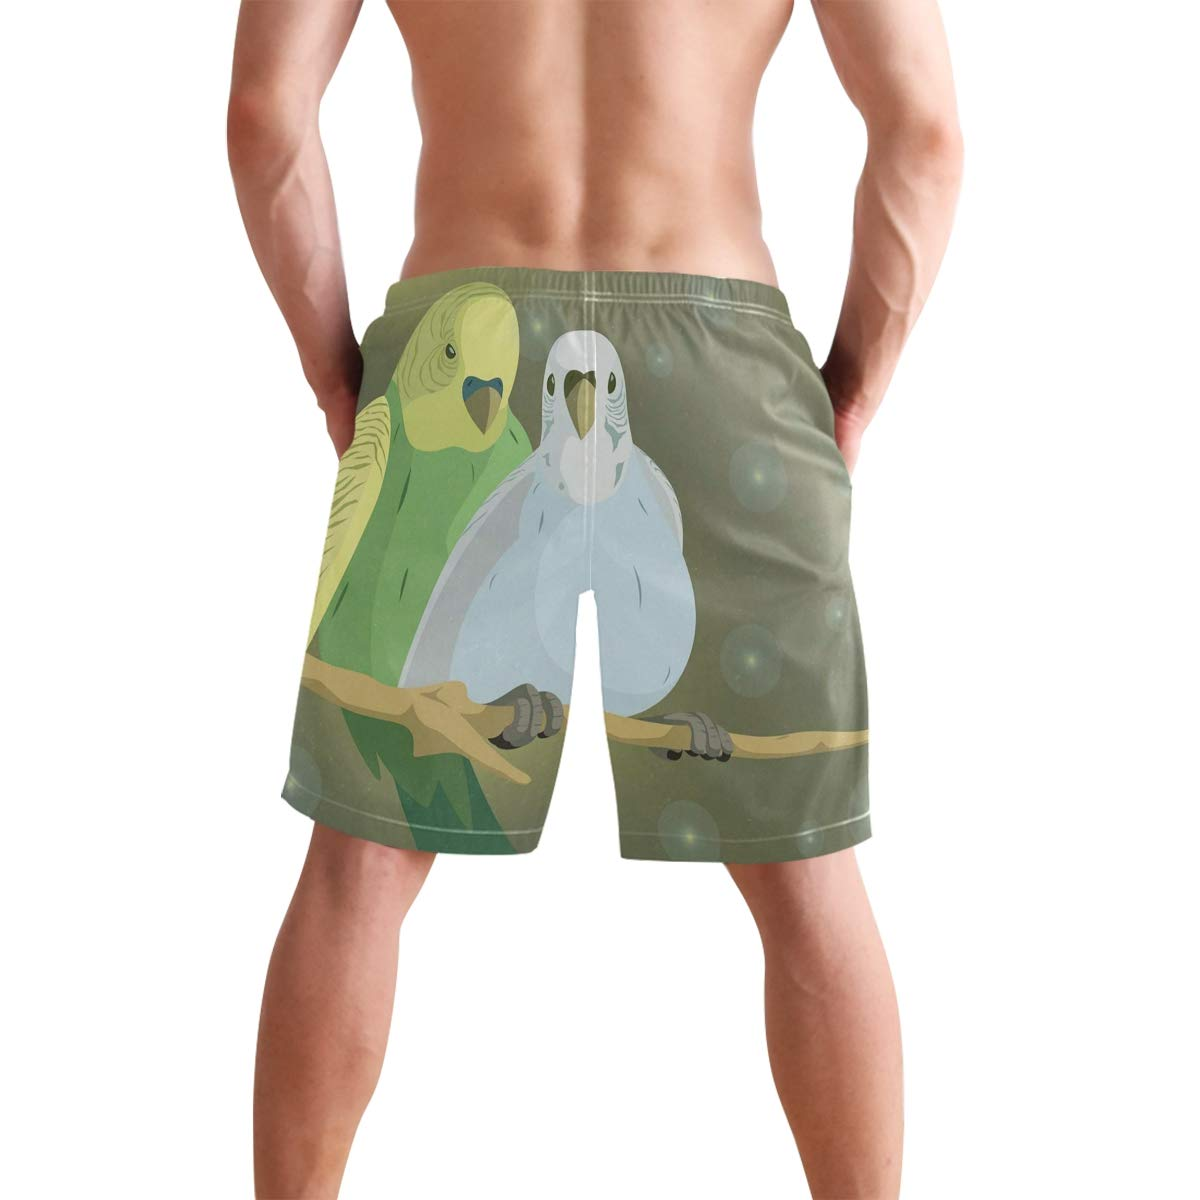 Mens Swim Trunks Summer 3D Print Budgie Couple Casual Athletic Swimming Short